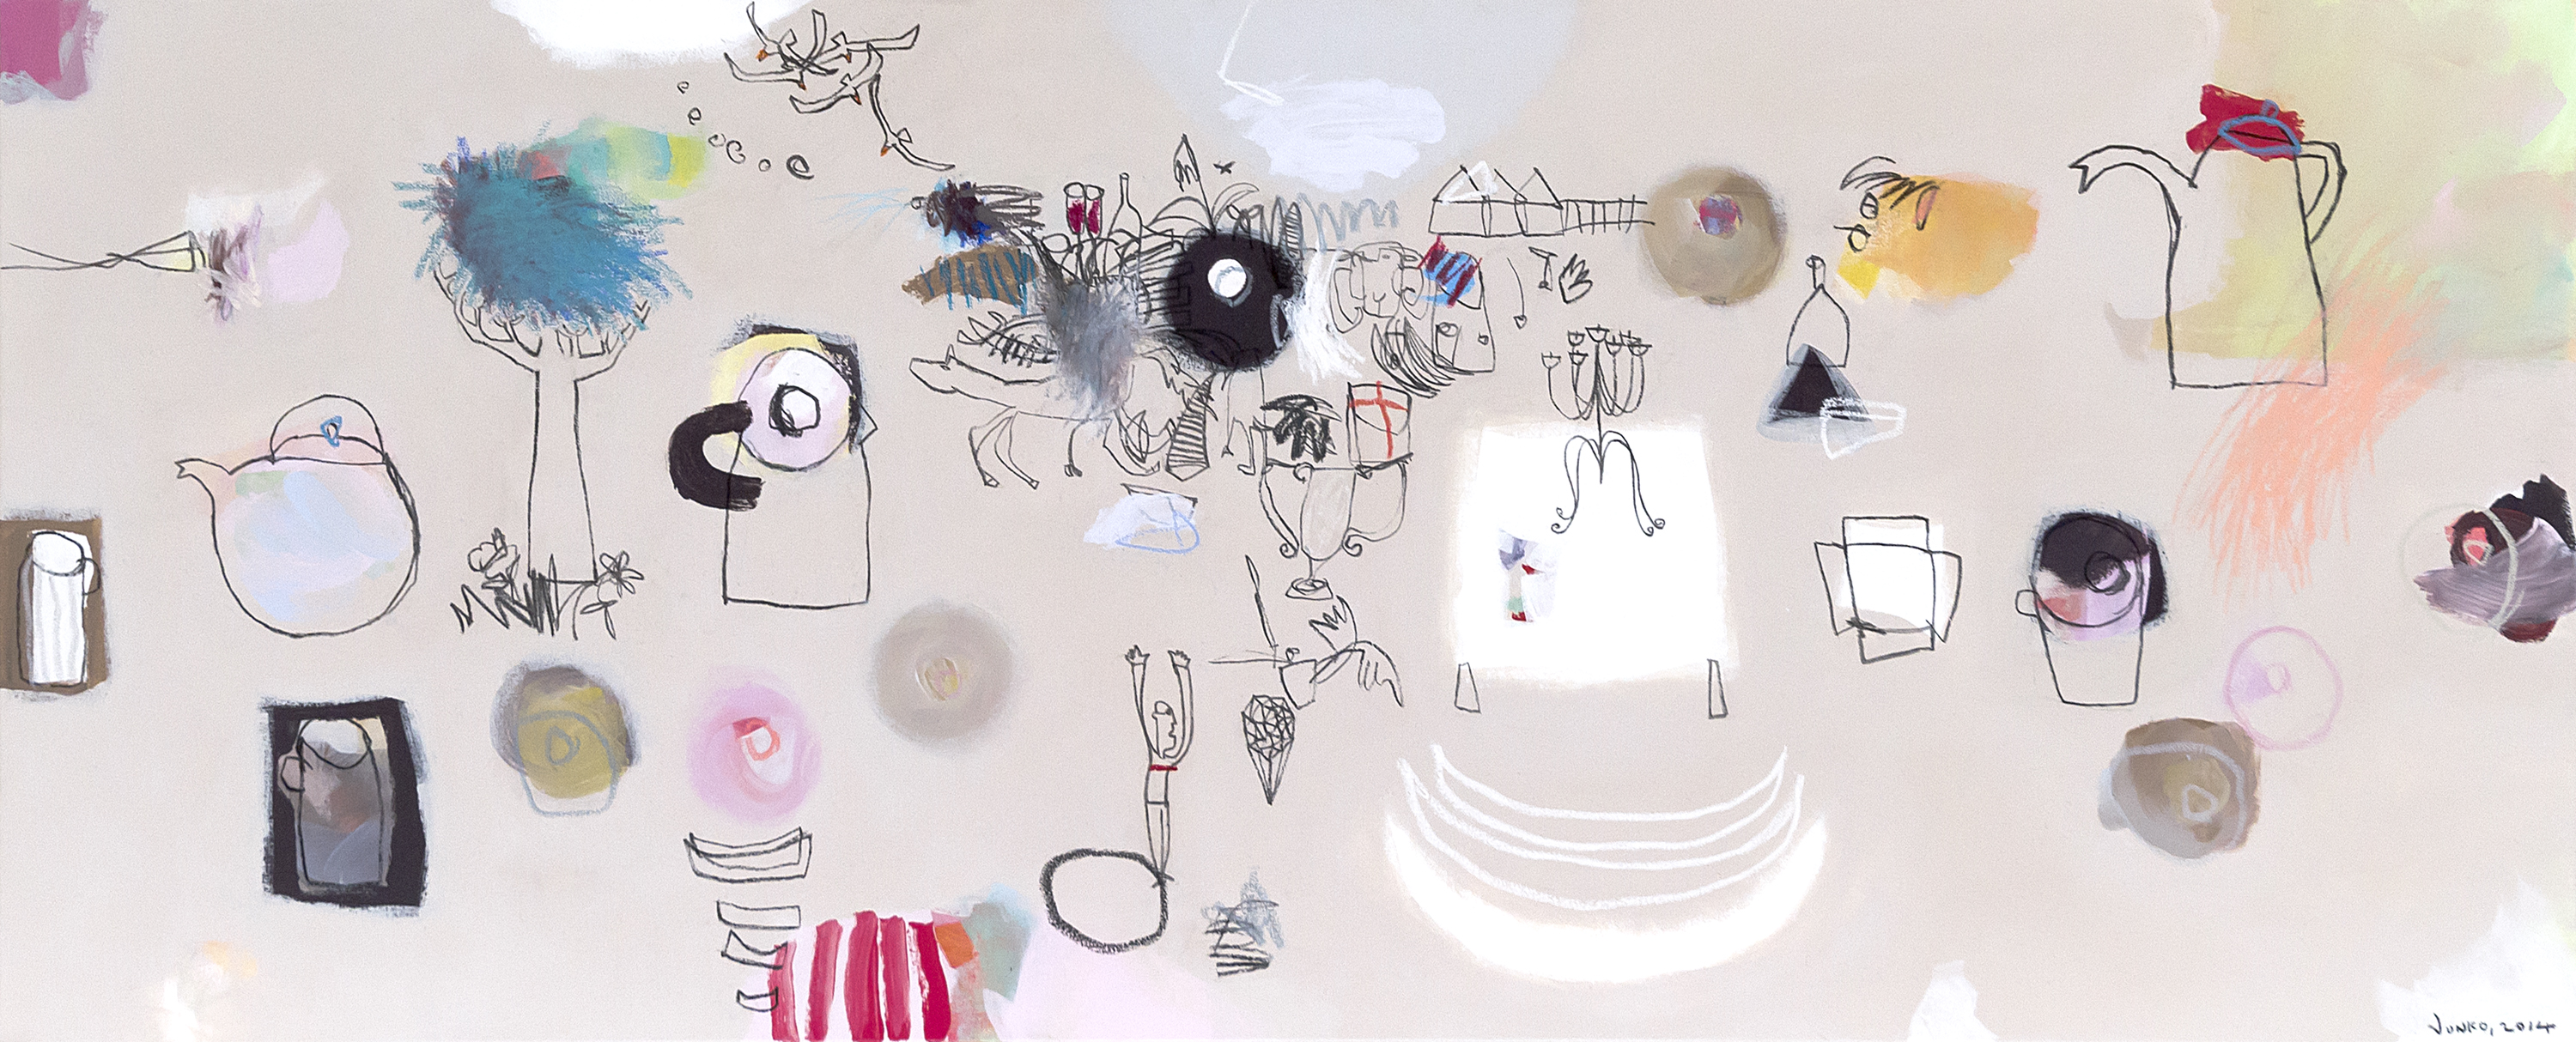 Junko Go, Ring Doughnut Syndrome, 2014, acrylic, oil pastel and charcoal on canvas, 59x140cm